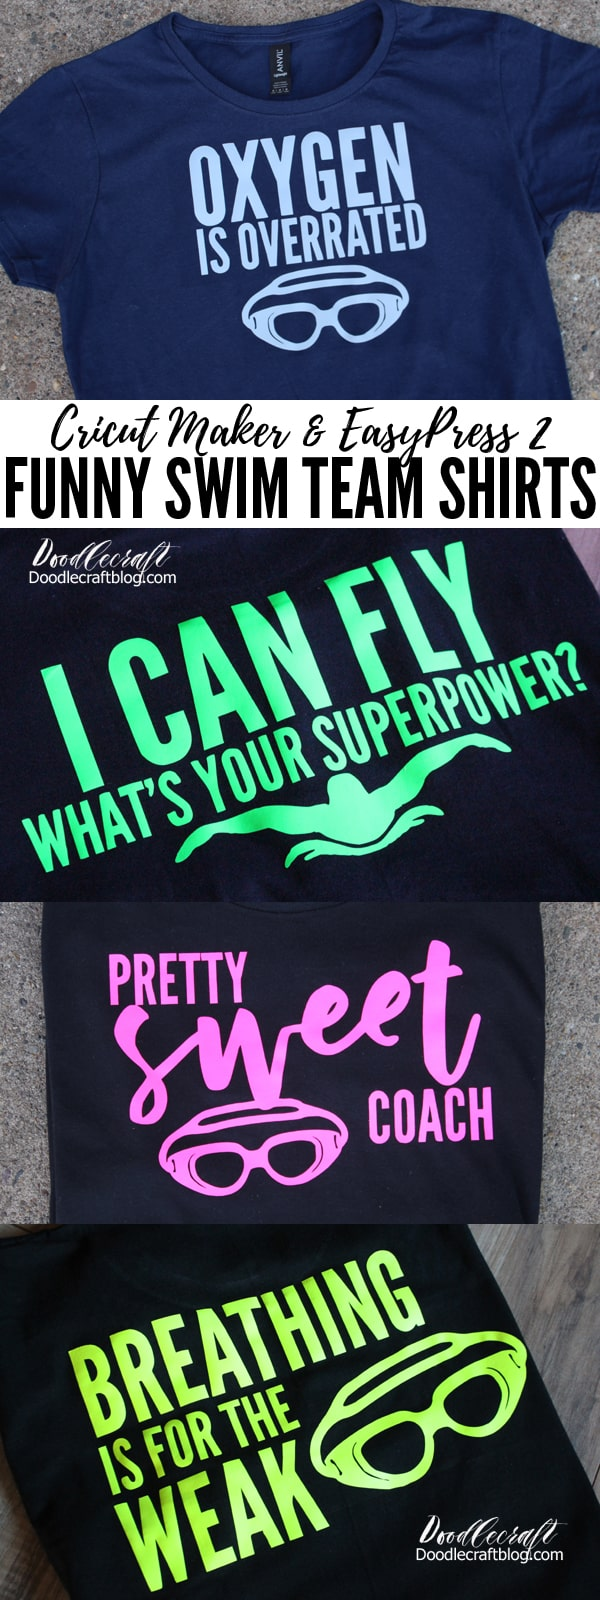 4 funny swimmer themed shirts made with the Cricut Maker and EasyPress 2 for perfect swim team gift ideas.